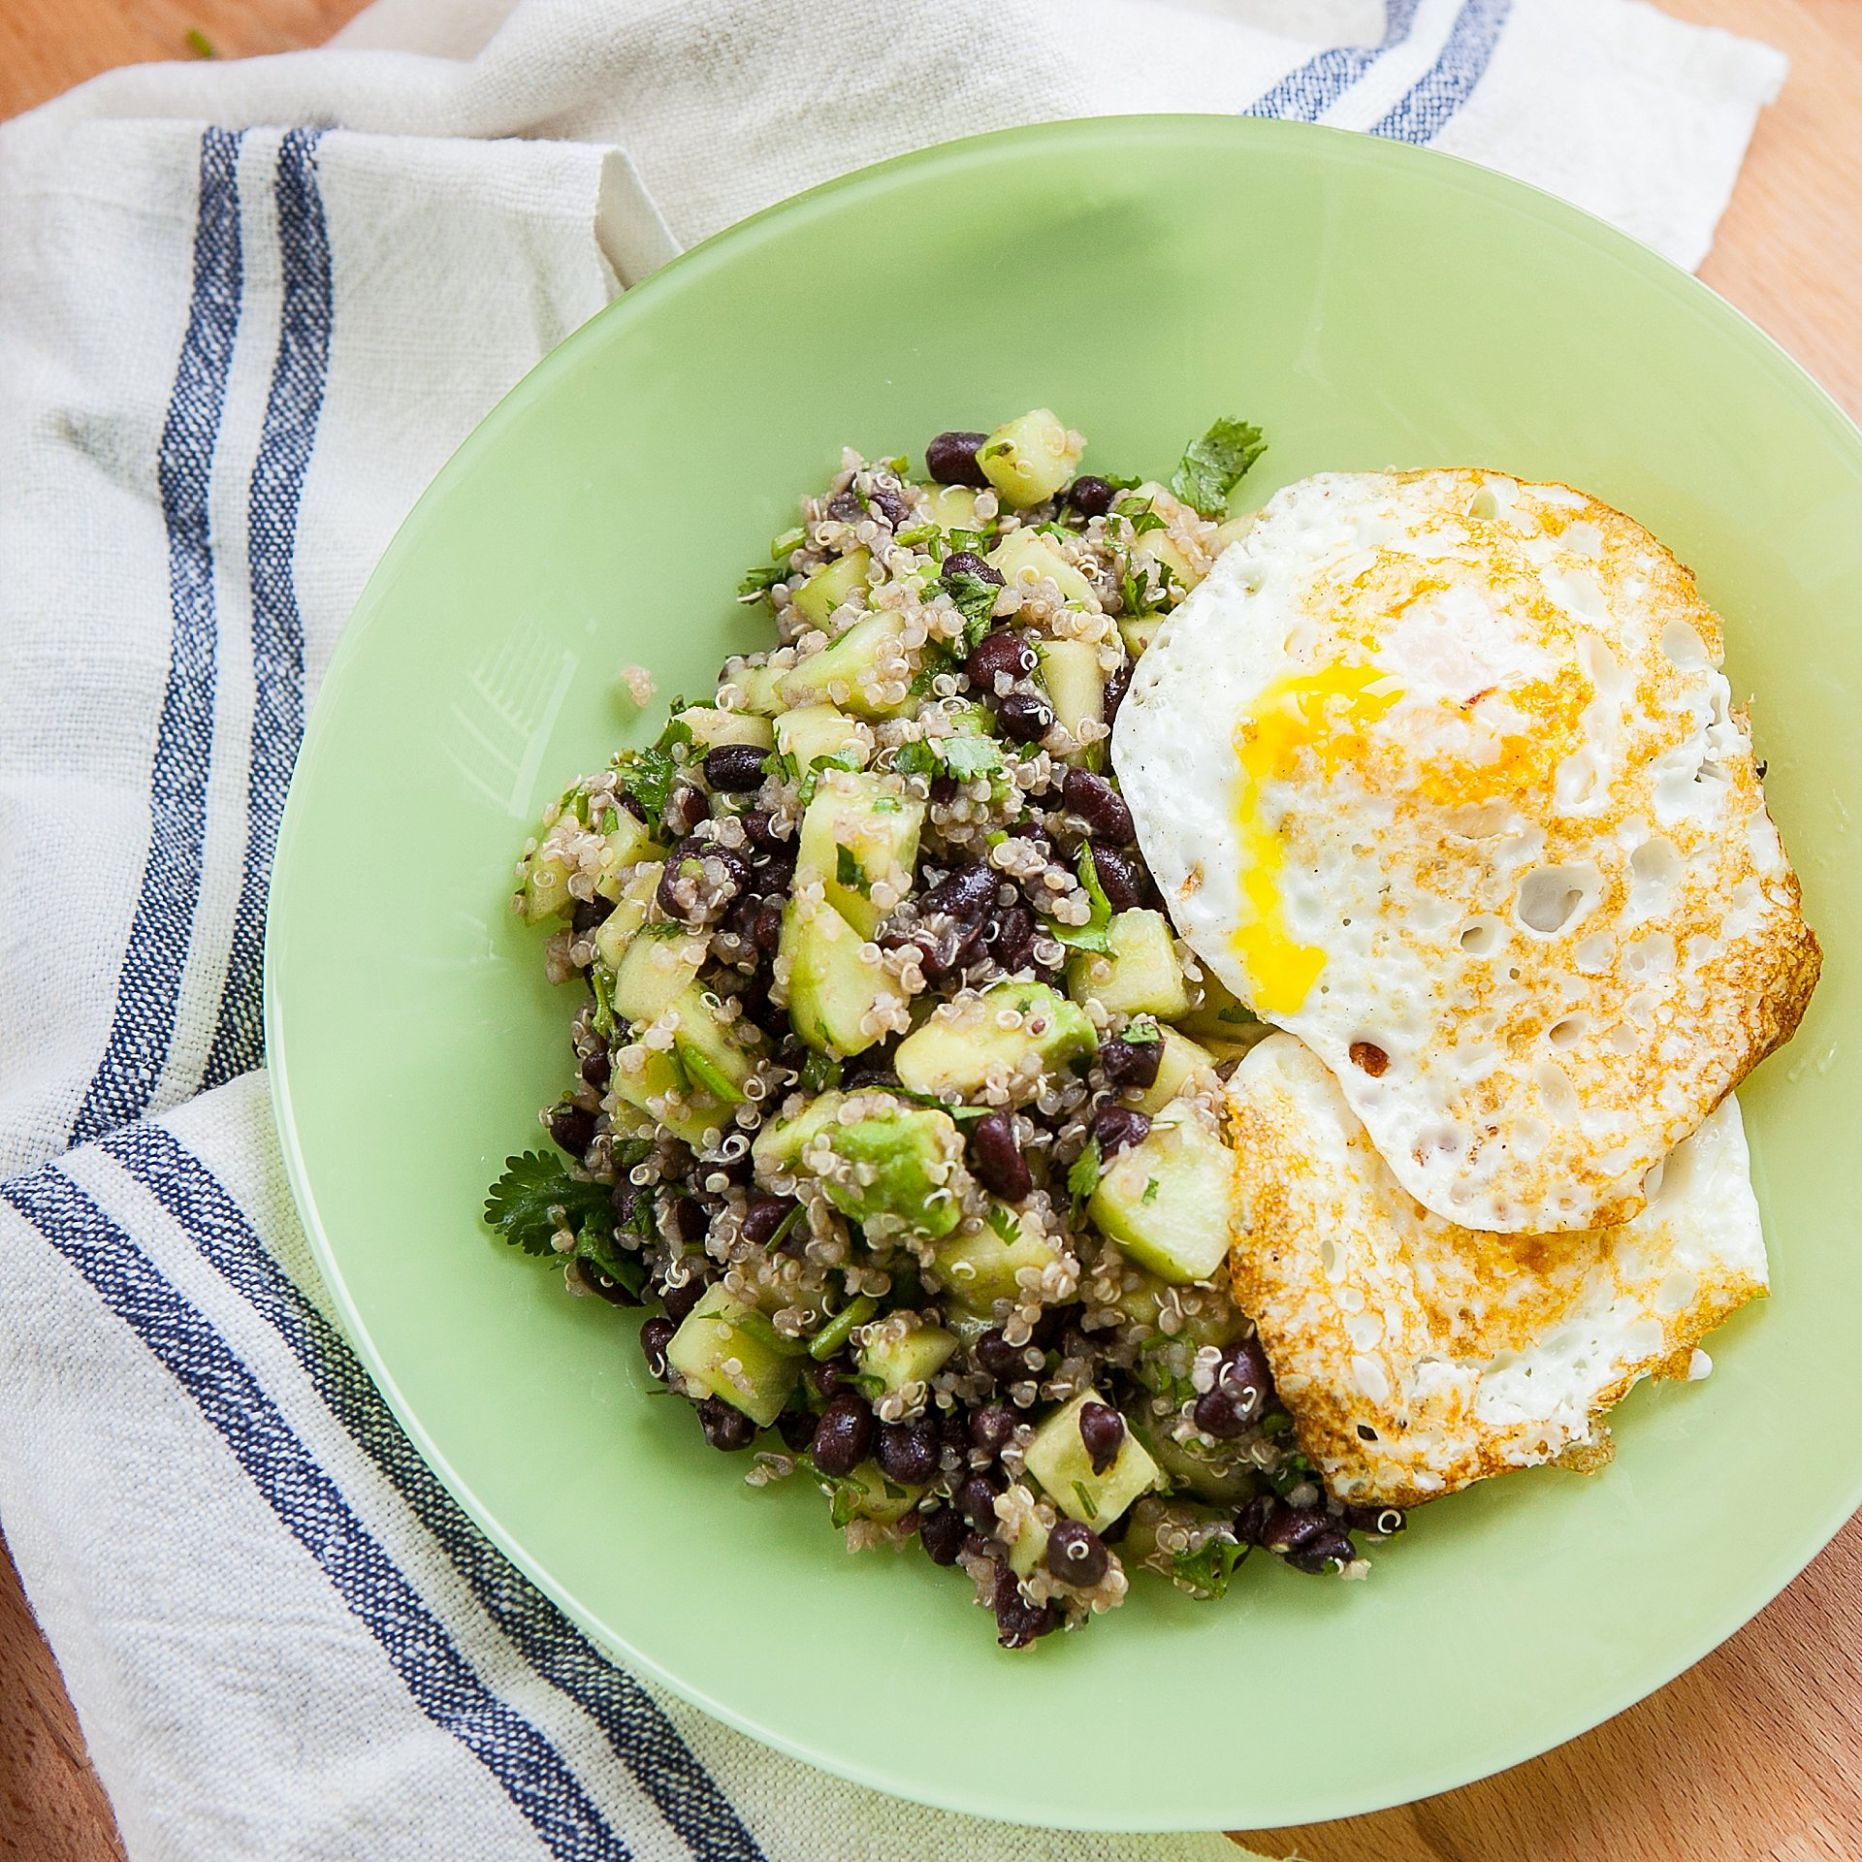 Quinoa, Black Beans, Cucumber and Avocado with Eggs